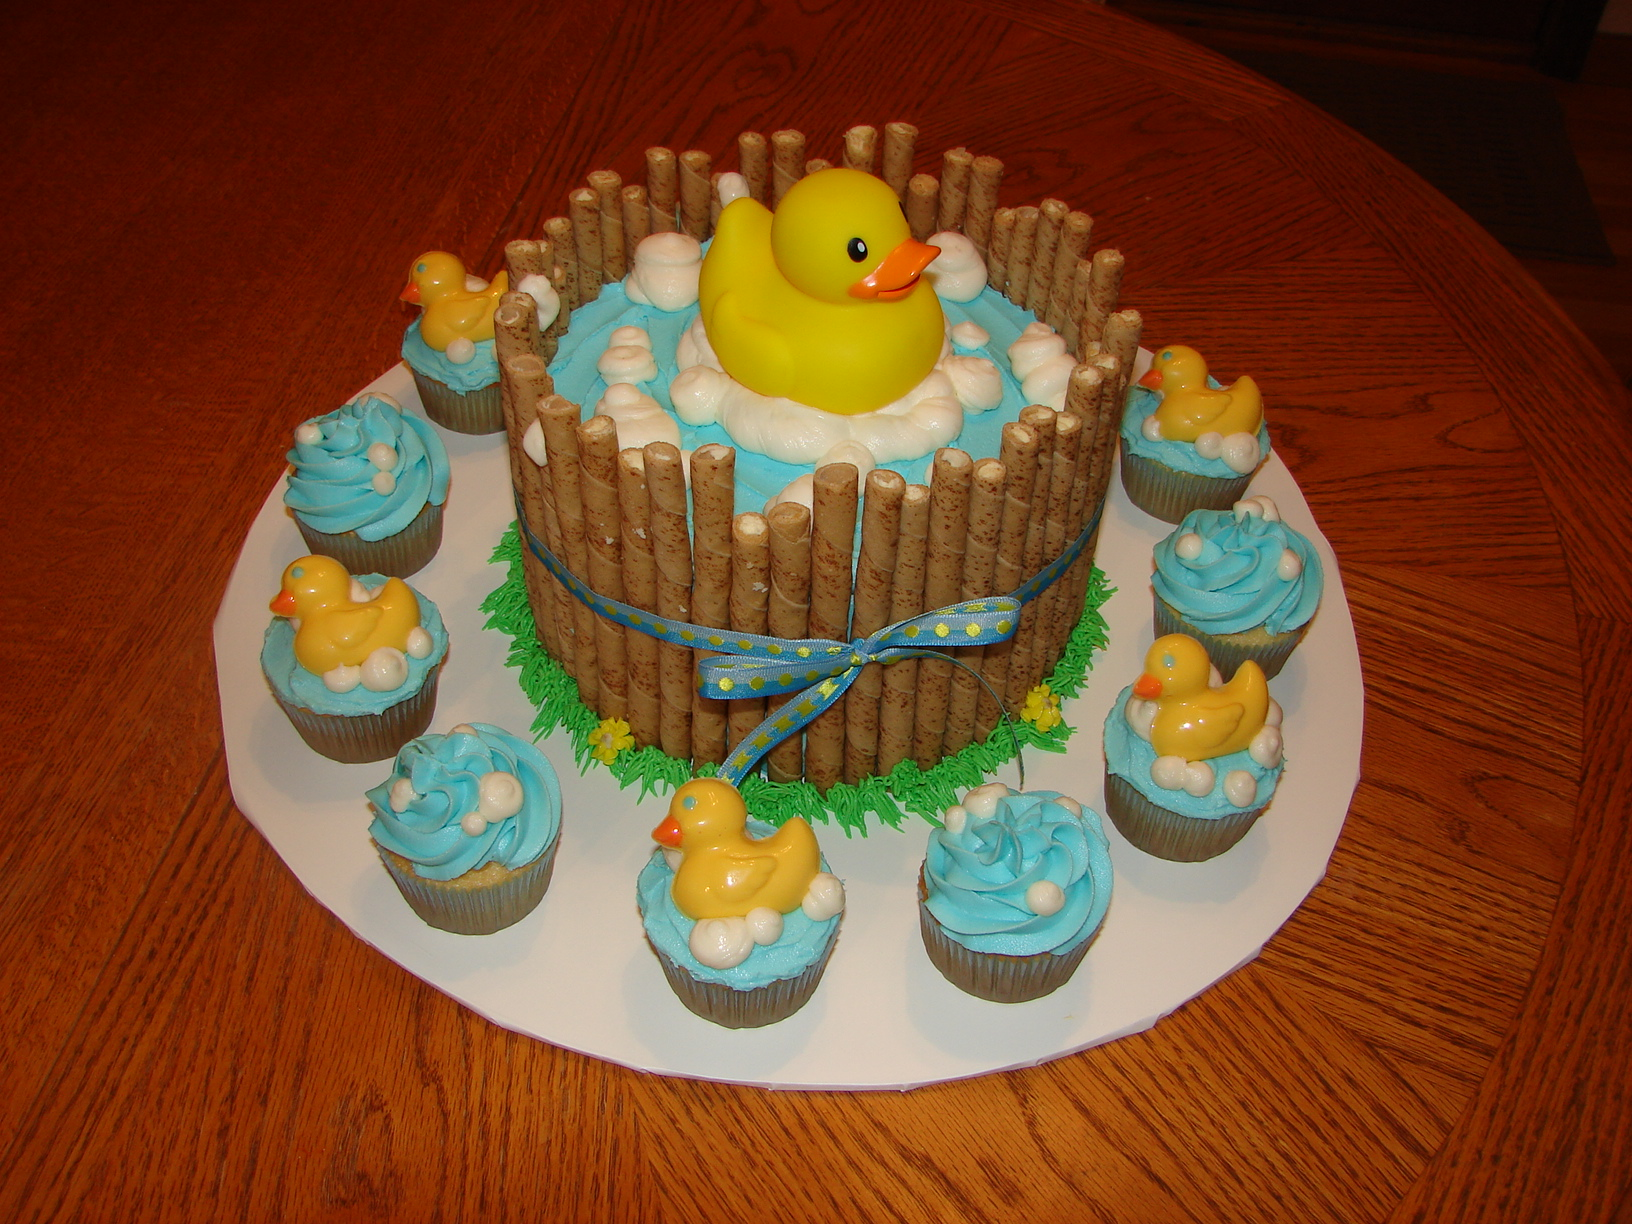 Old Fashioned Baby Boy Rubber Ducks Image - Bathtubs For Small ...